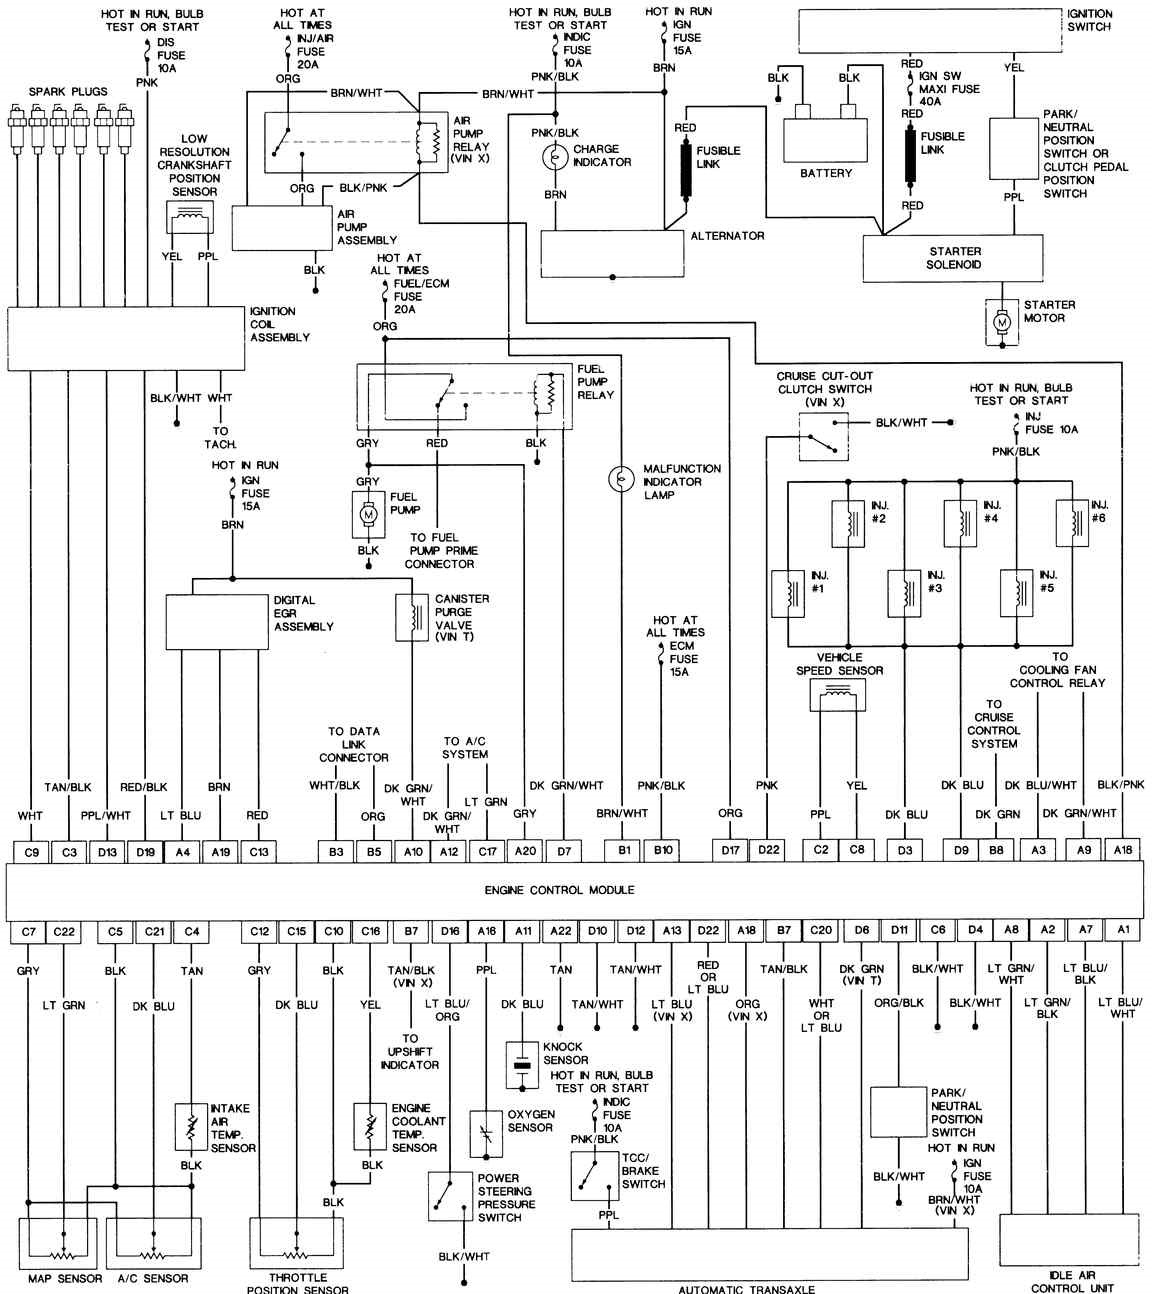 Pontiac Grand Prix 31l Engine Diagram Trusted Wiring Diagrams 2002 Sample Lq1 3 4 Logbook Transmission